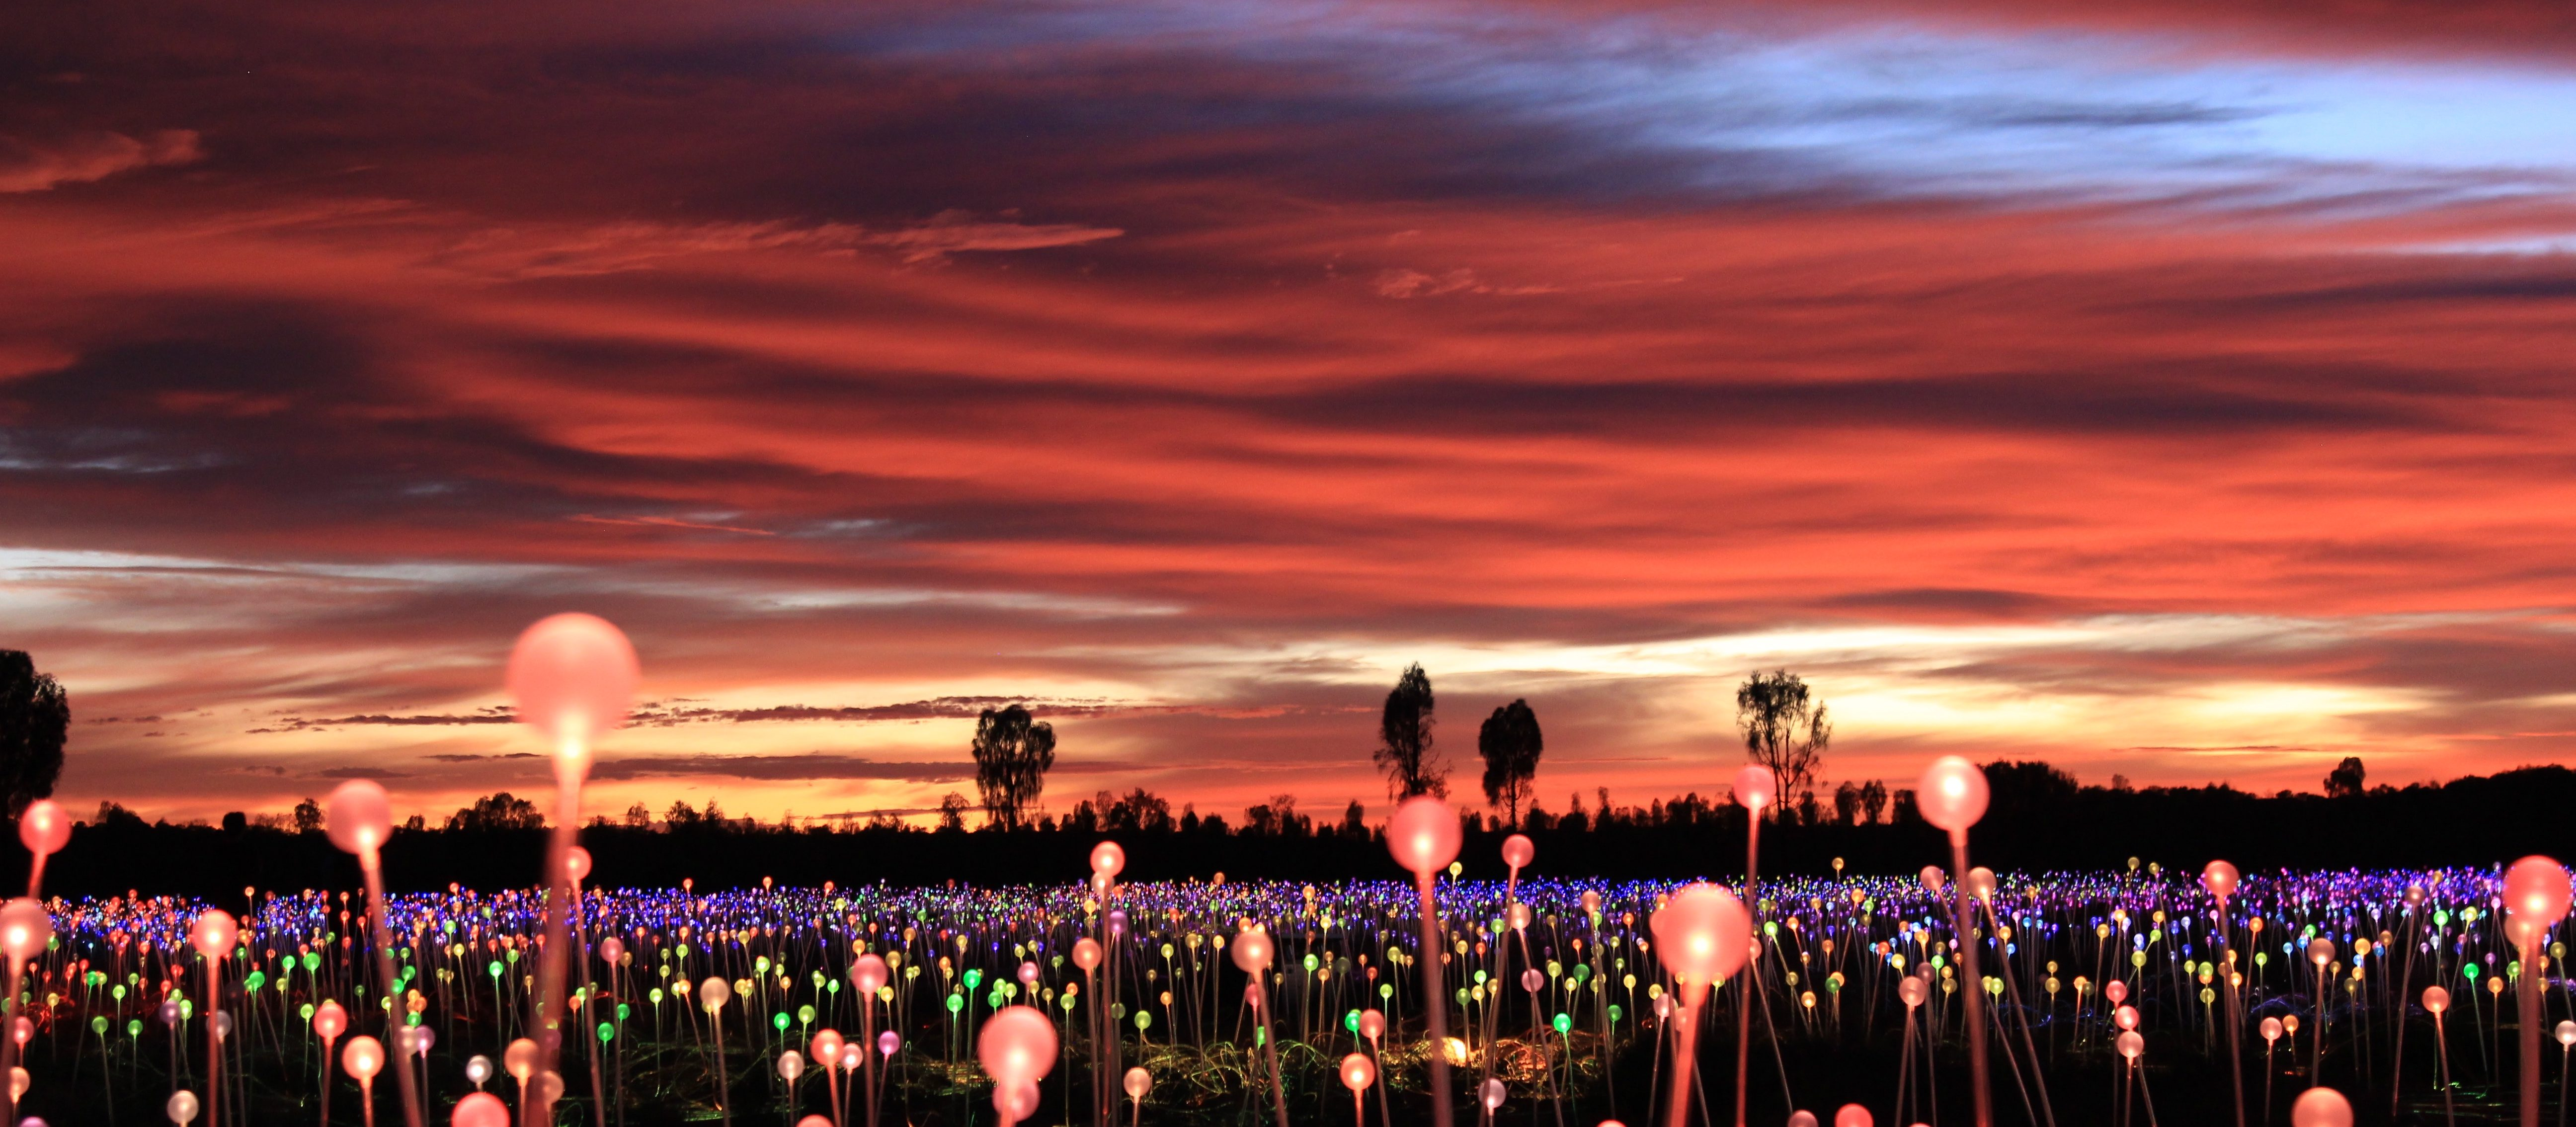 uluru-australia-field-of-light-bruce-munro